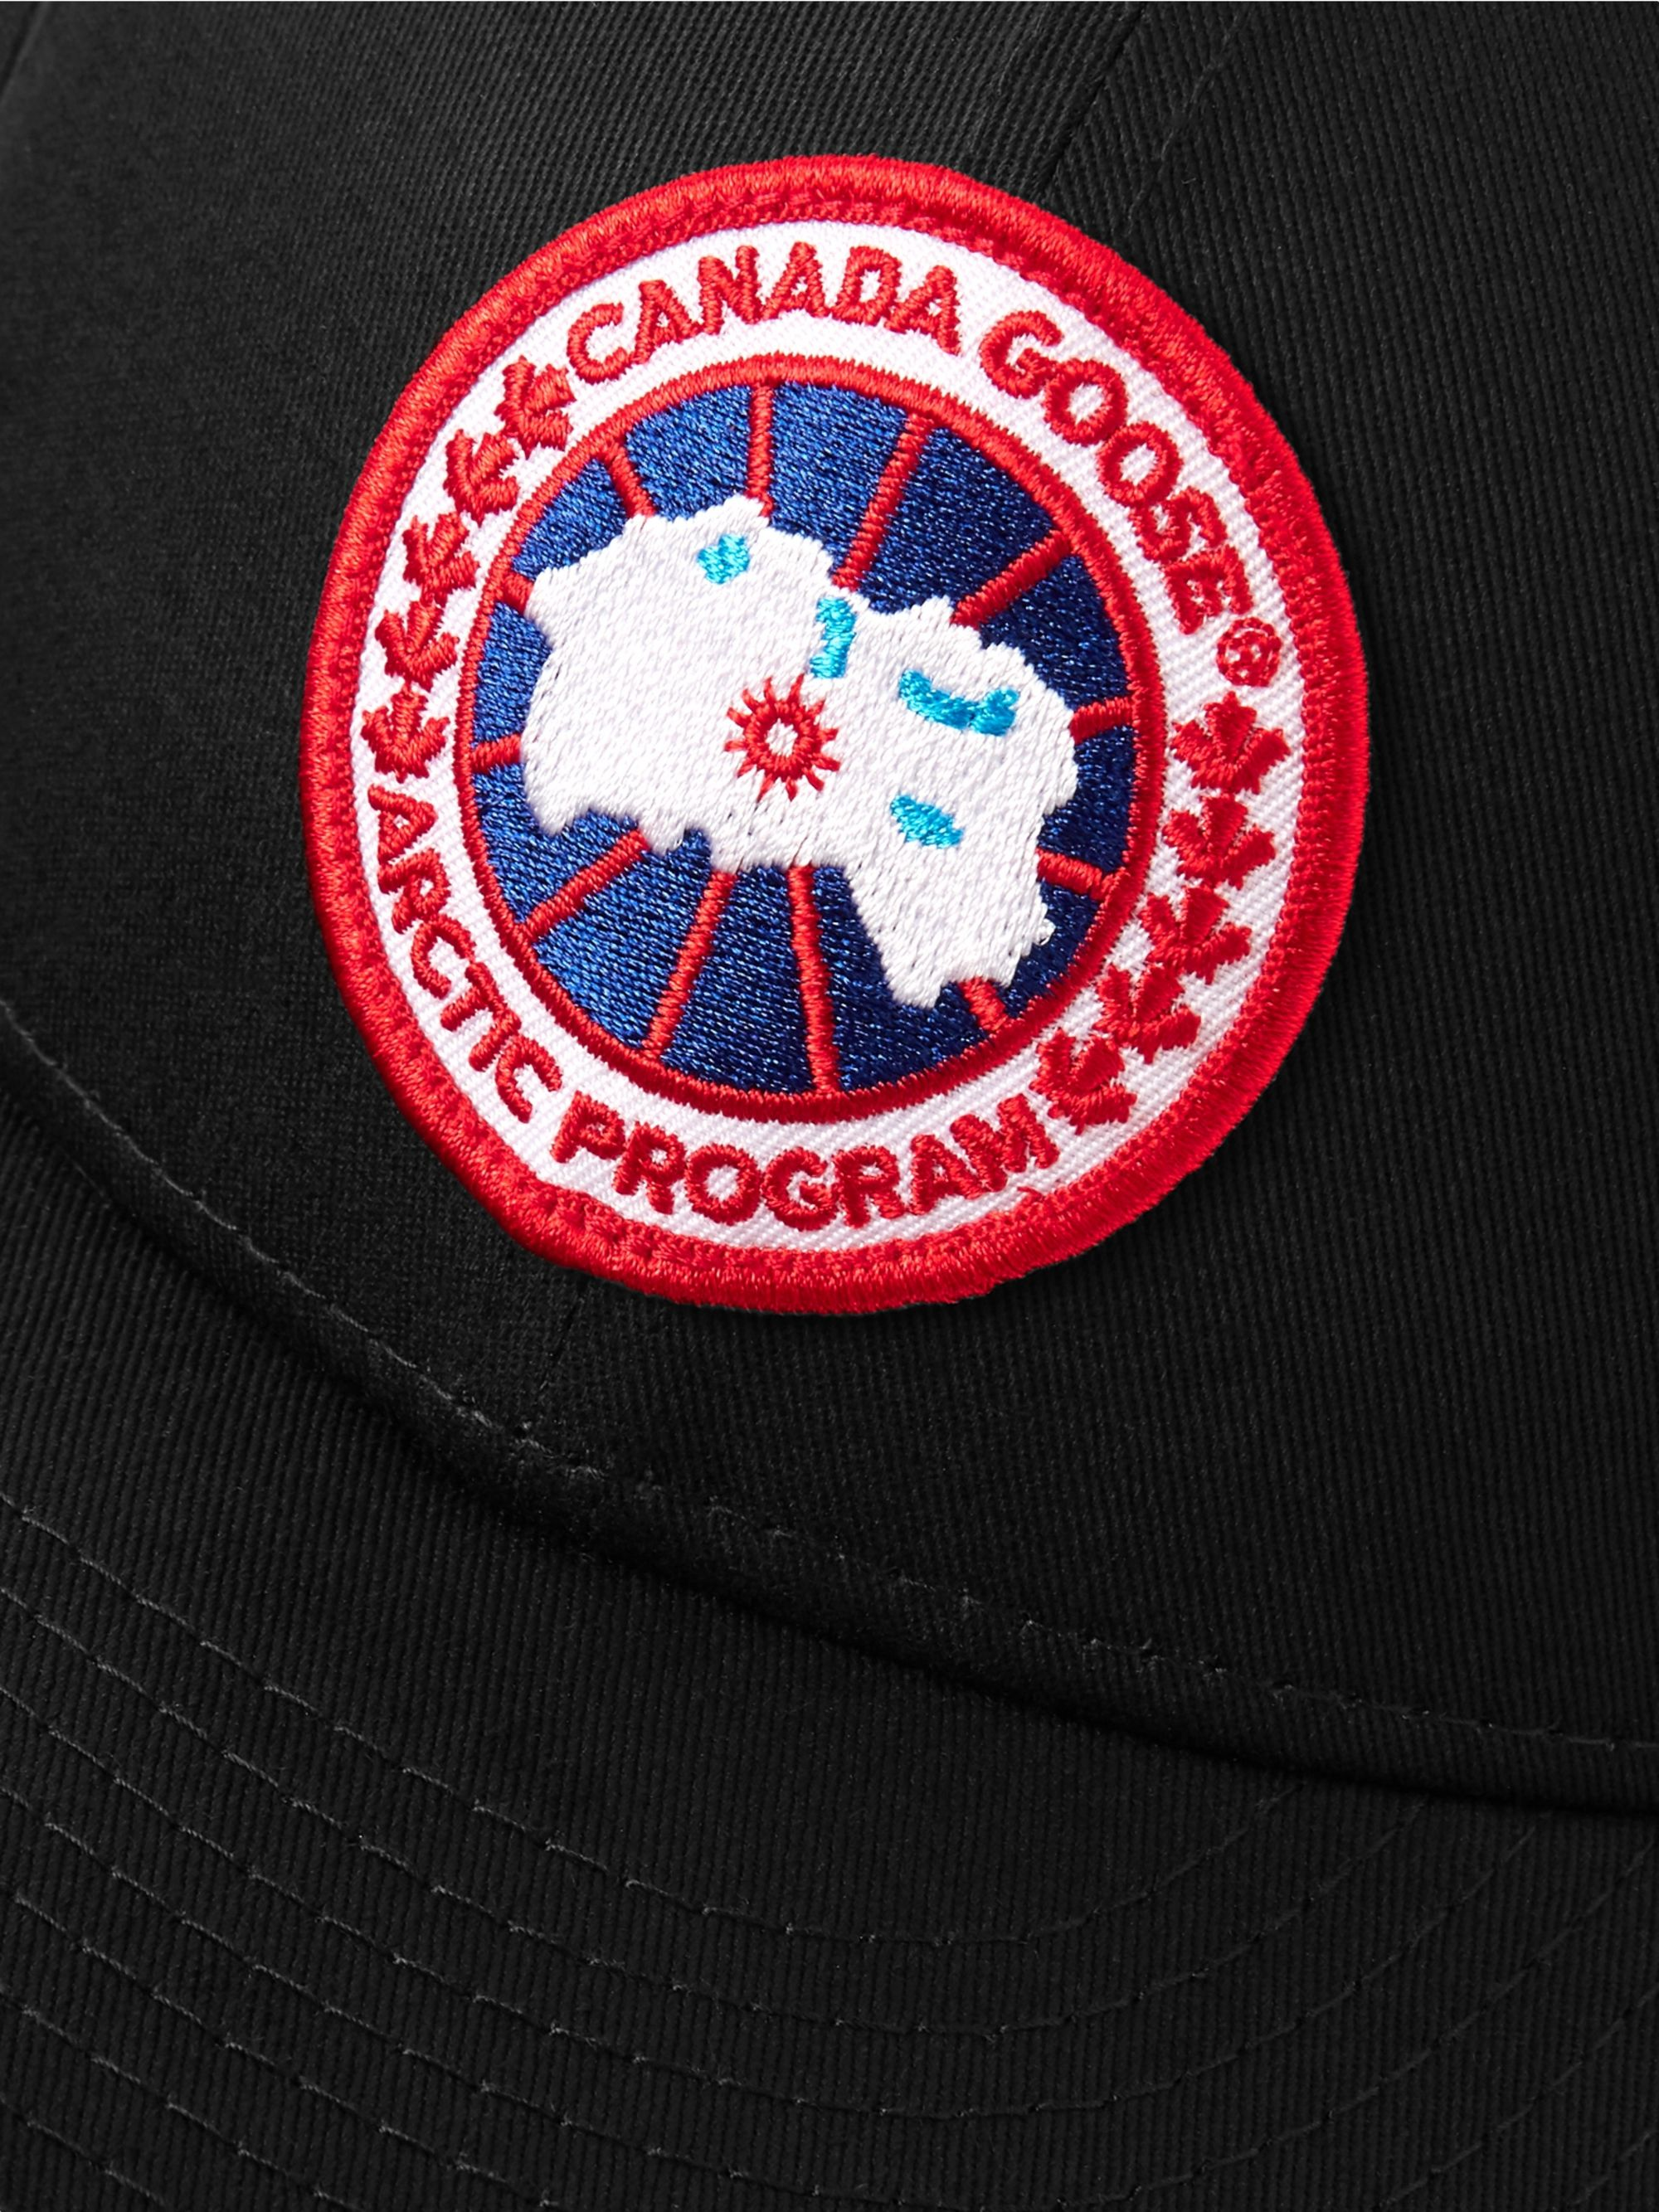 Canada Goose + New Era 9FIFTY Logo-Appliquéd Cotton-Twill Baseball Cap